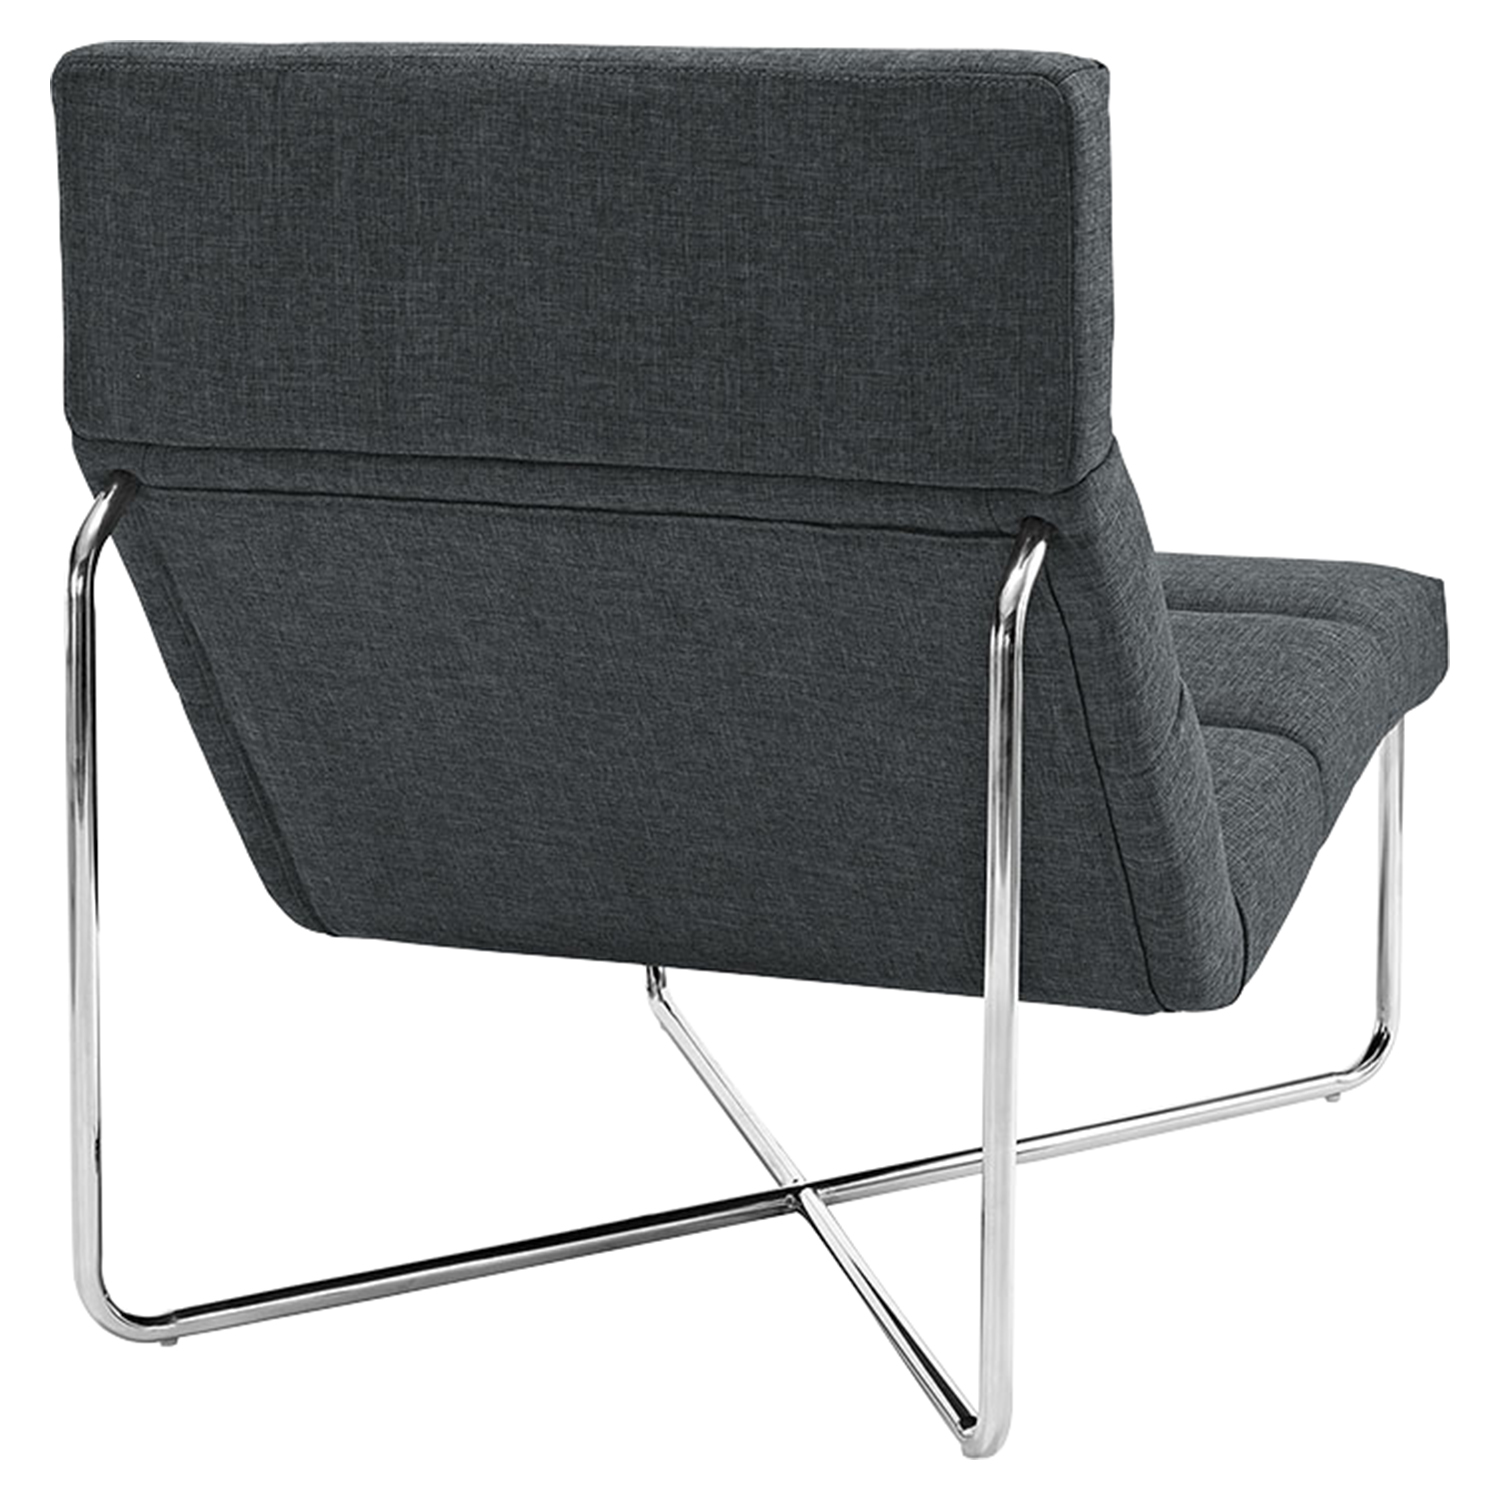 Reach Lounge Chair - Gray - EEI-2081-GRY